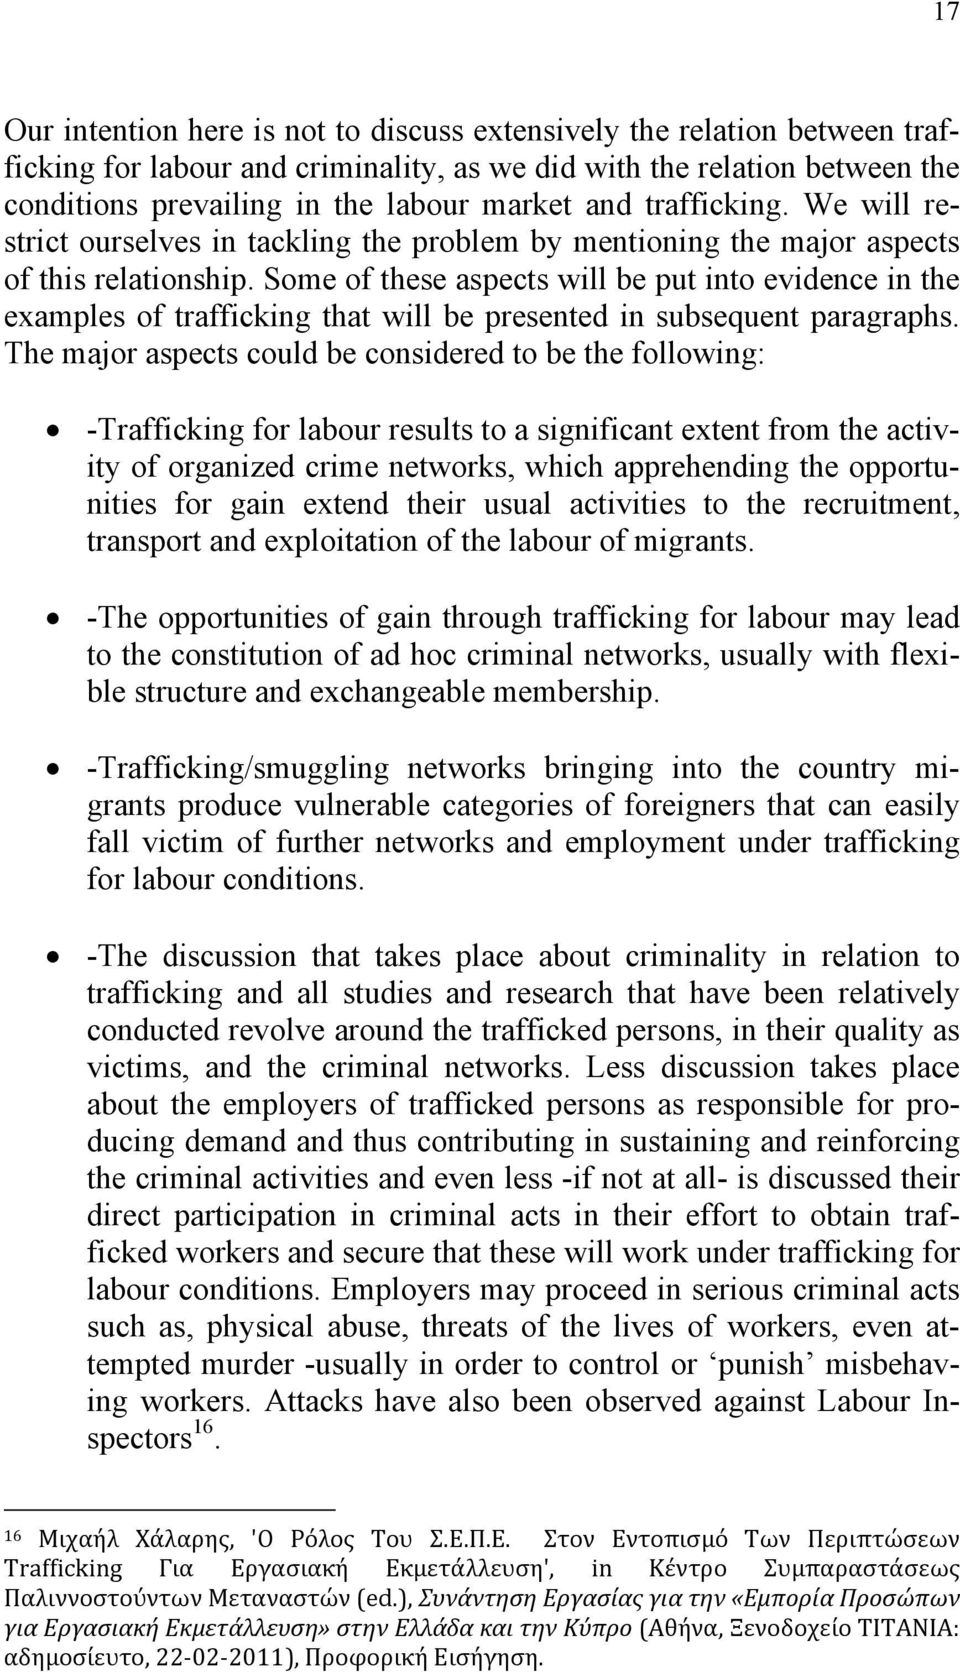 Some of these aspects will be put into evidence in the examples of trafficking that will be presented in subsequent paragraphs.